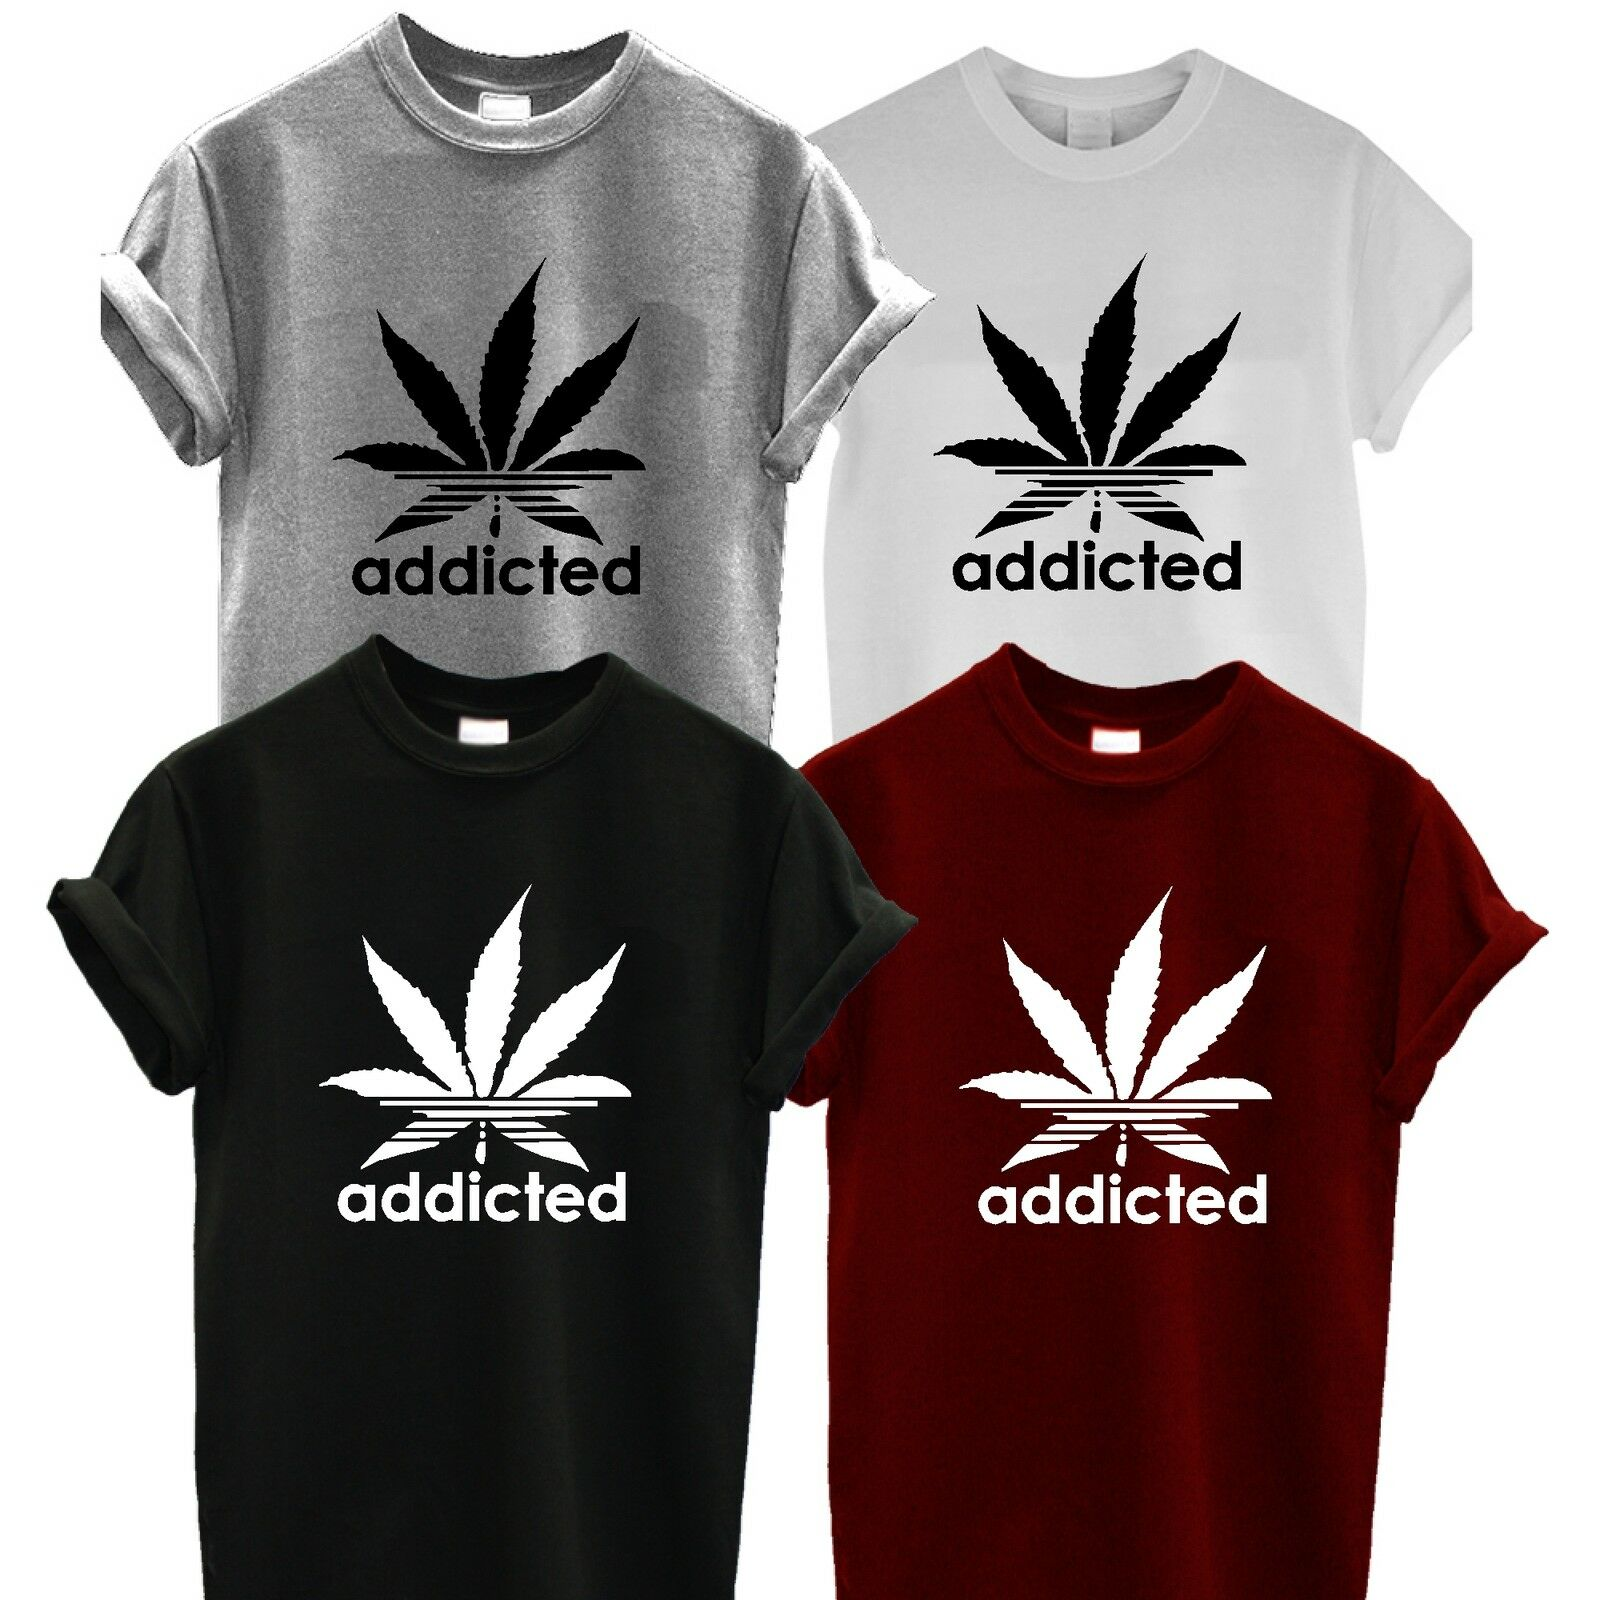 ADDICTED T SHIRT addict spliff weed CANNABIS WIZ KHALIFA PROSTo MARIJUANA 1